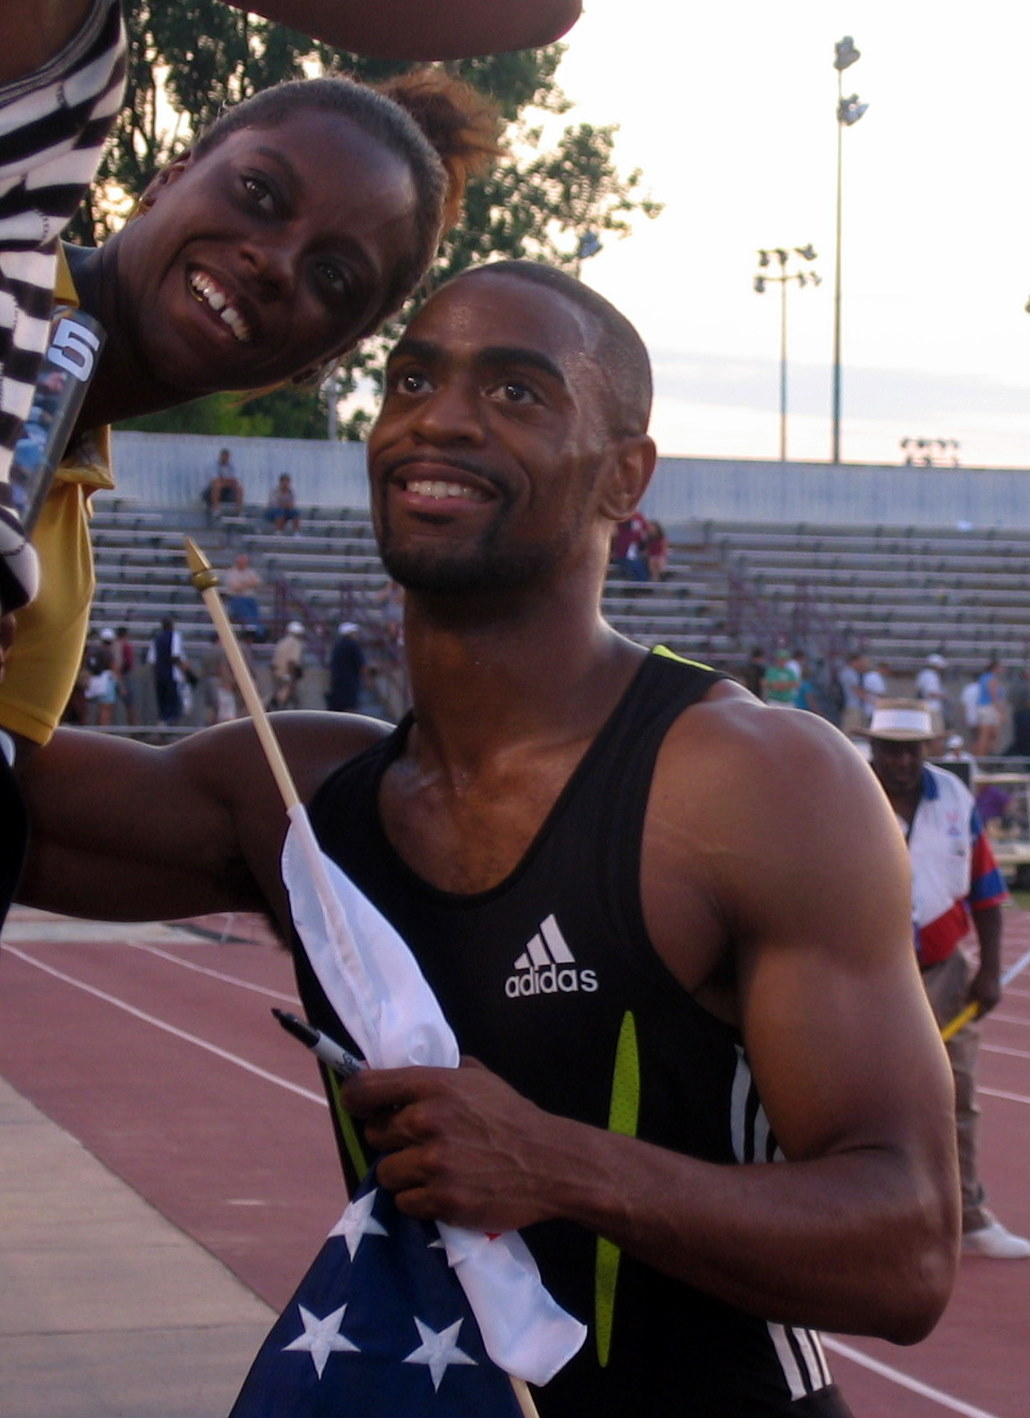 File:Tyson Gay 100m Champion.JPG